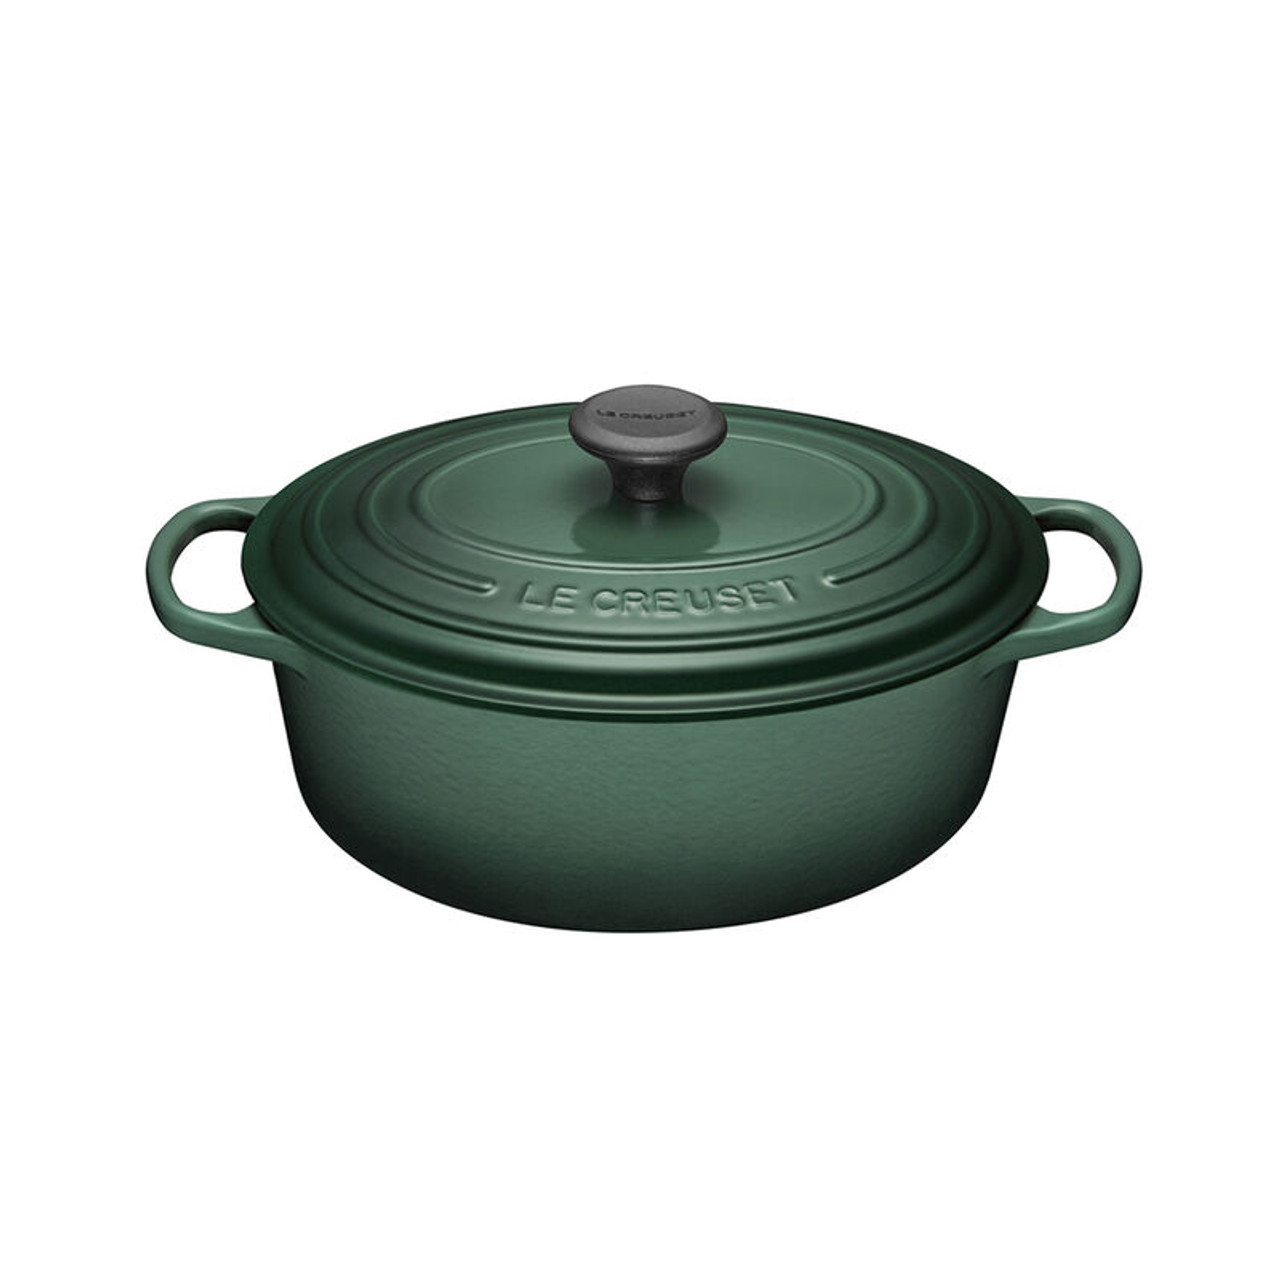 LE CREUSET OVAL FRENCH OVEN 4.7L